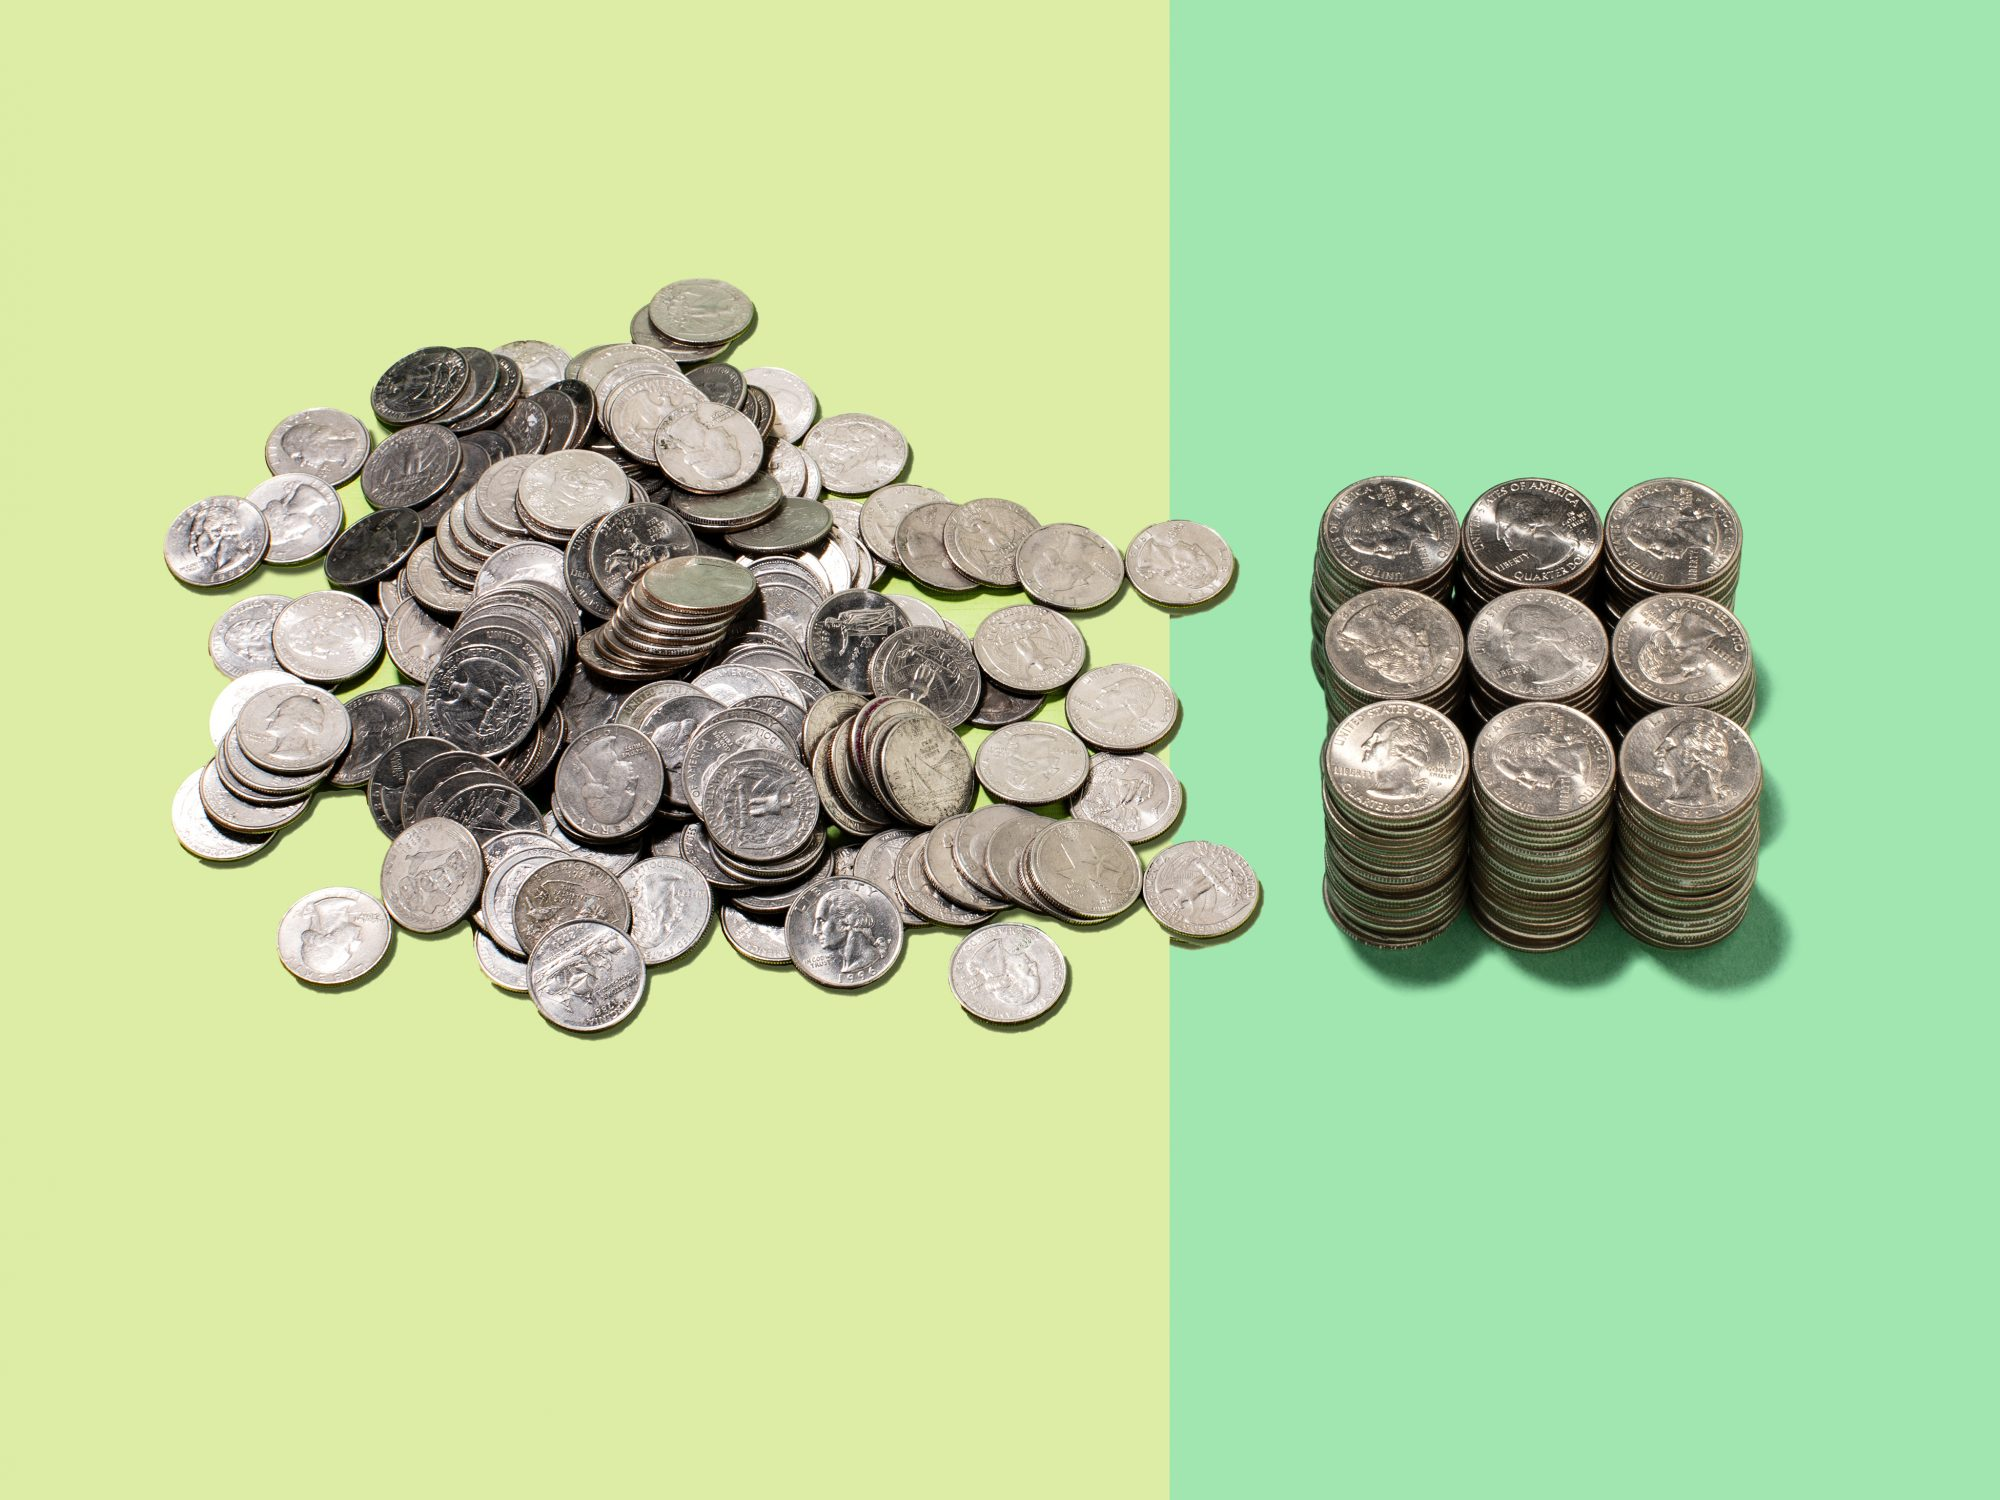 hire-an-accountant: piles of quarters